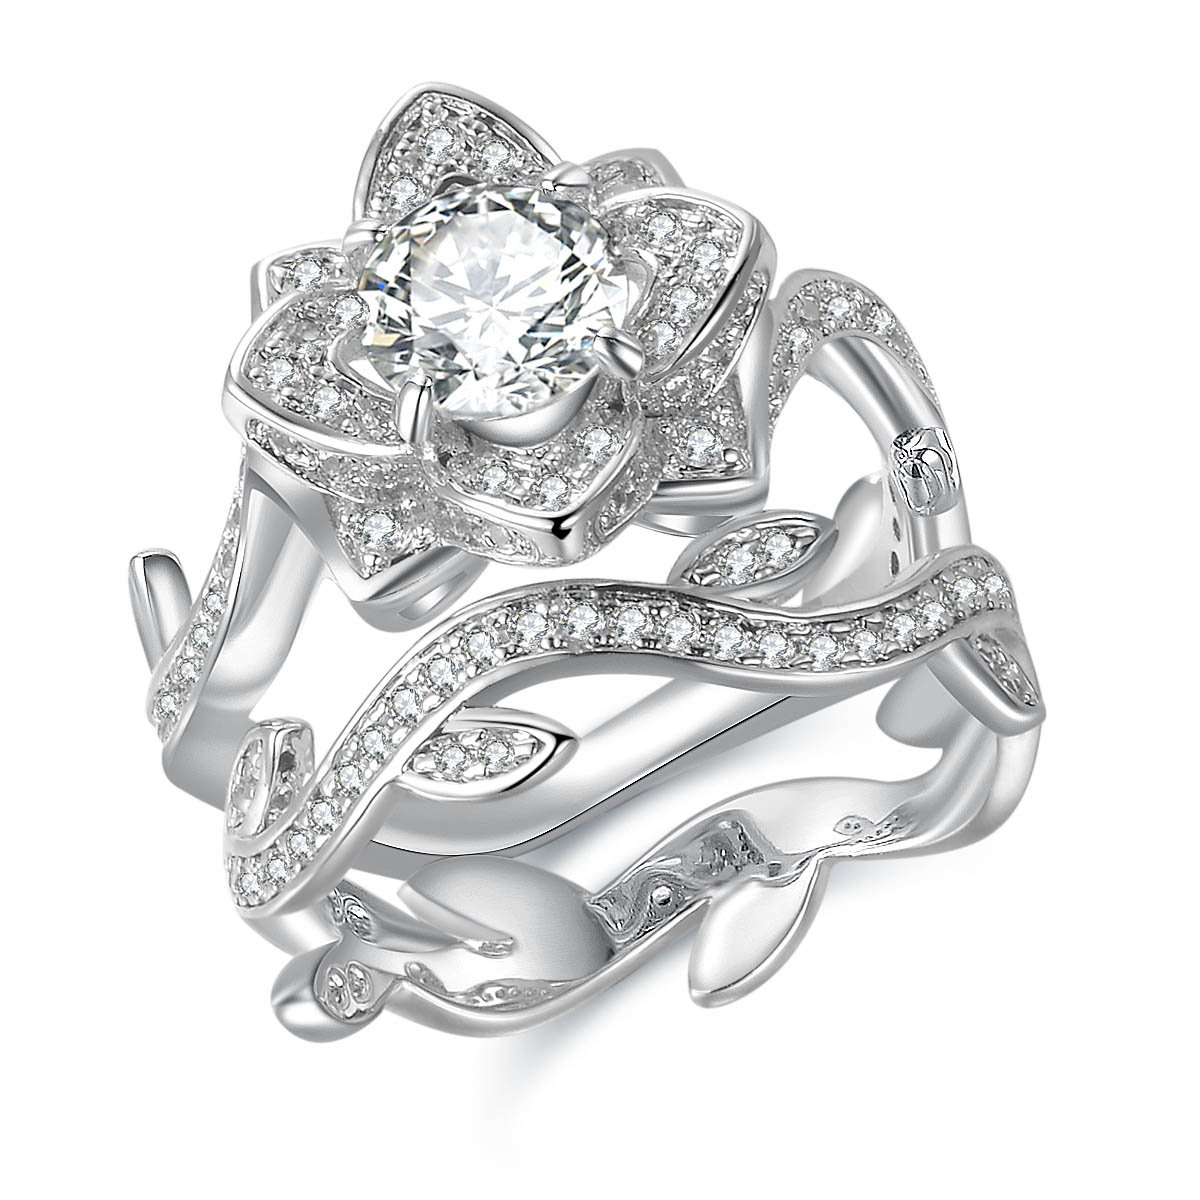 Newshe Jewellery Flower Wedding Band Engagement Ring Set Women 925 Sterling Silver Round White Cz